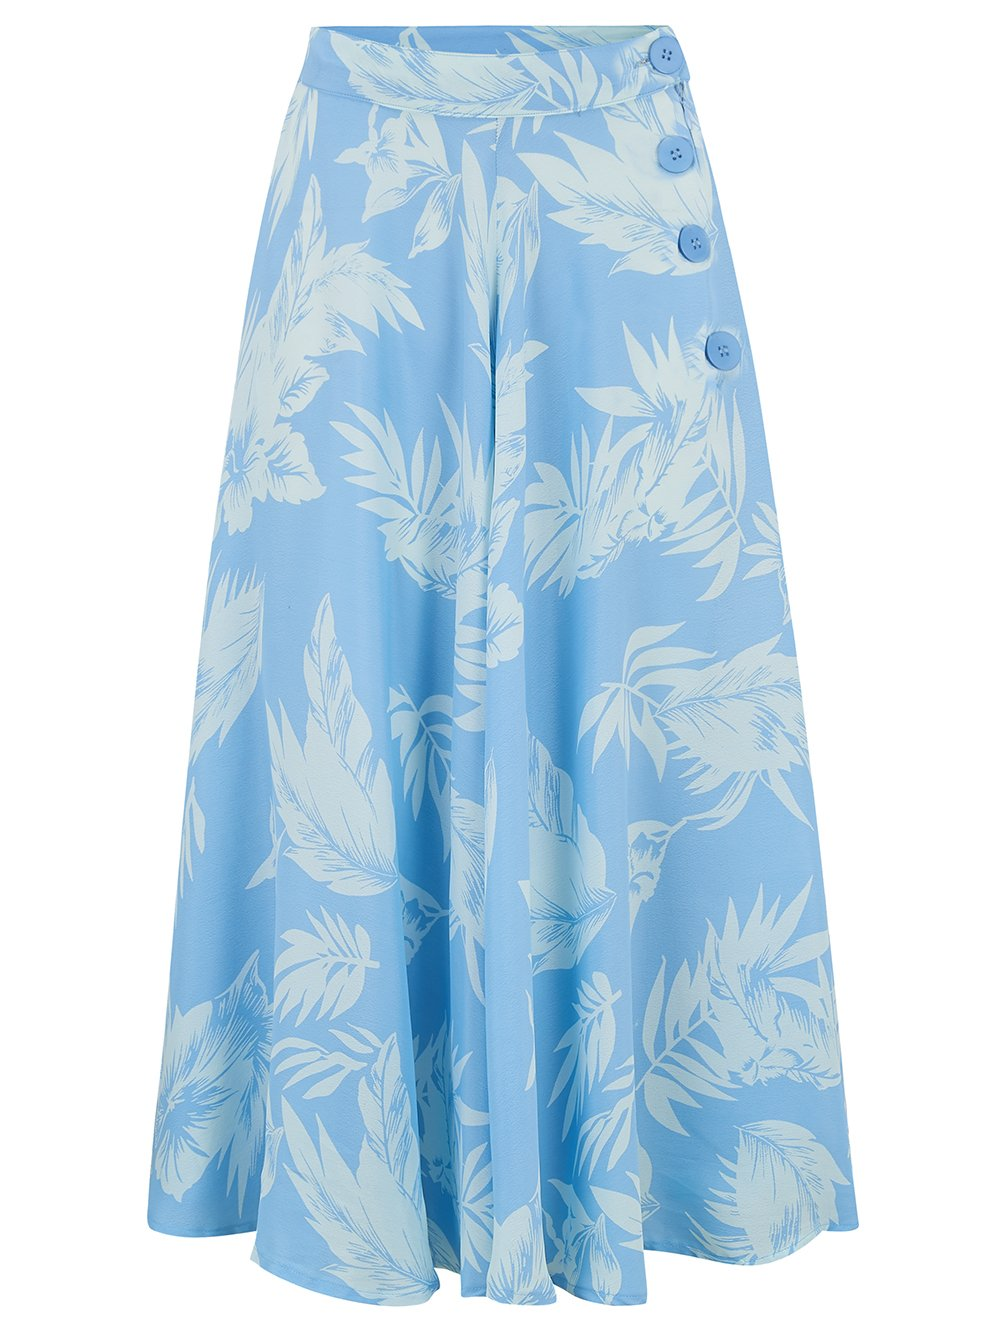 "The Seamstress Of Bloomsbury The 1940s Vintage Inspired ""Isabelle"" Skirt in Blue Hawaii by The Seamstress of Bloomsbury - RocknRomance Clothing"